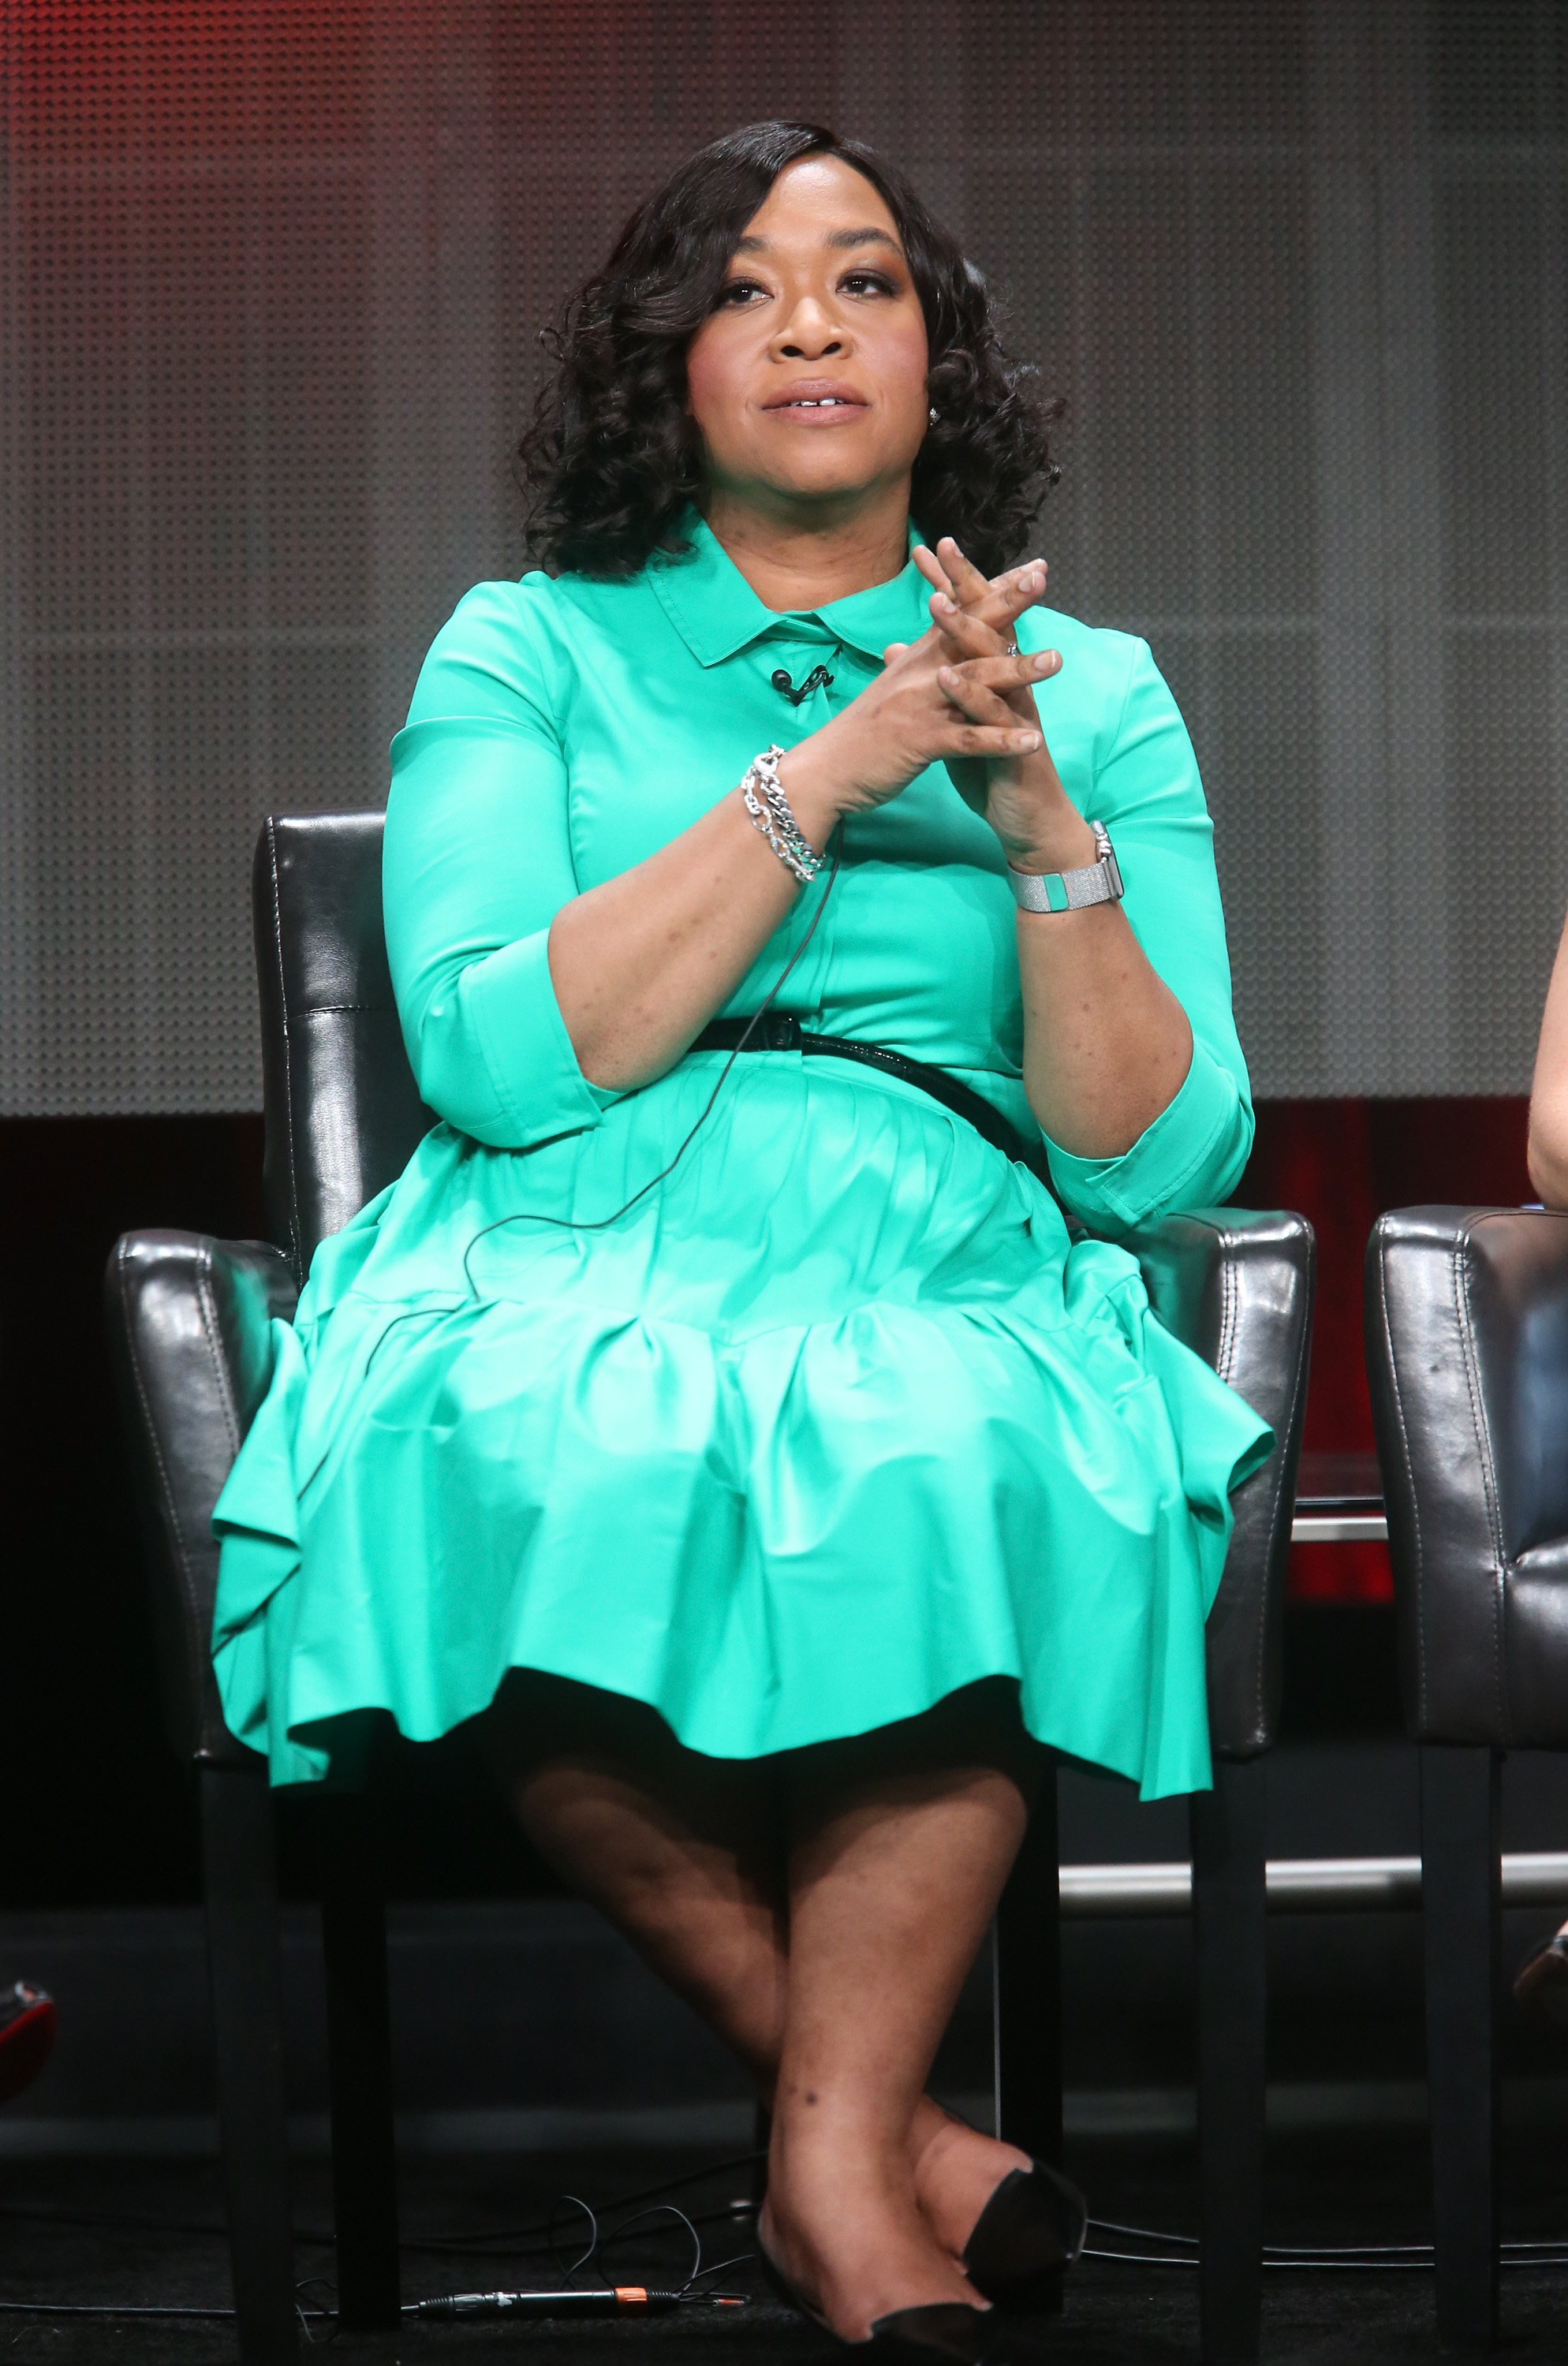 Shonda Rhimes: Me female characters are not role models